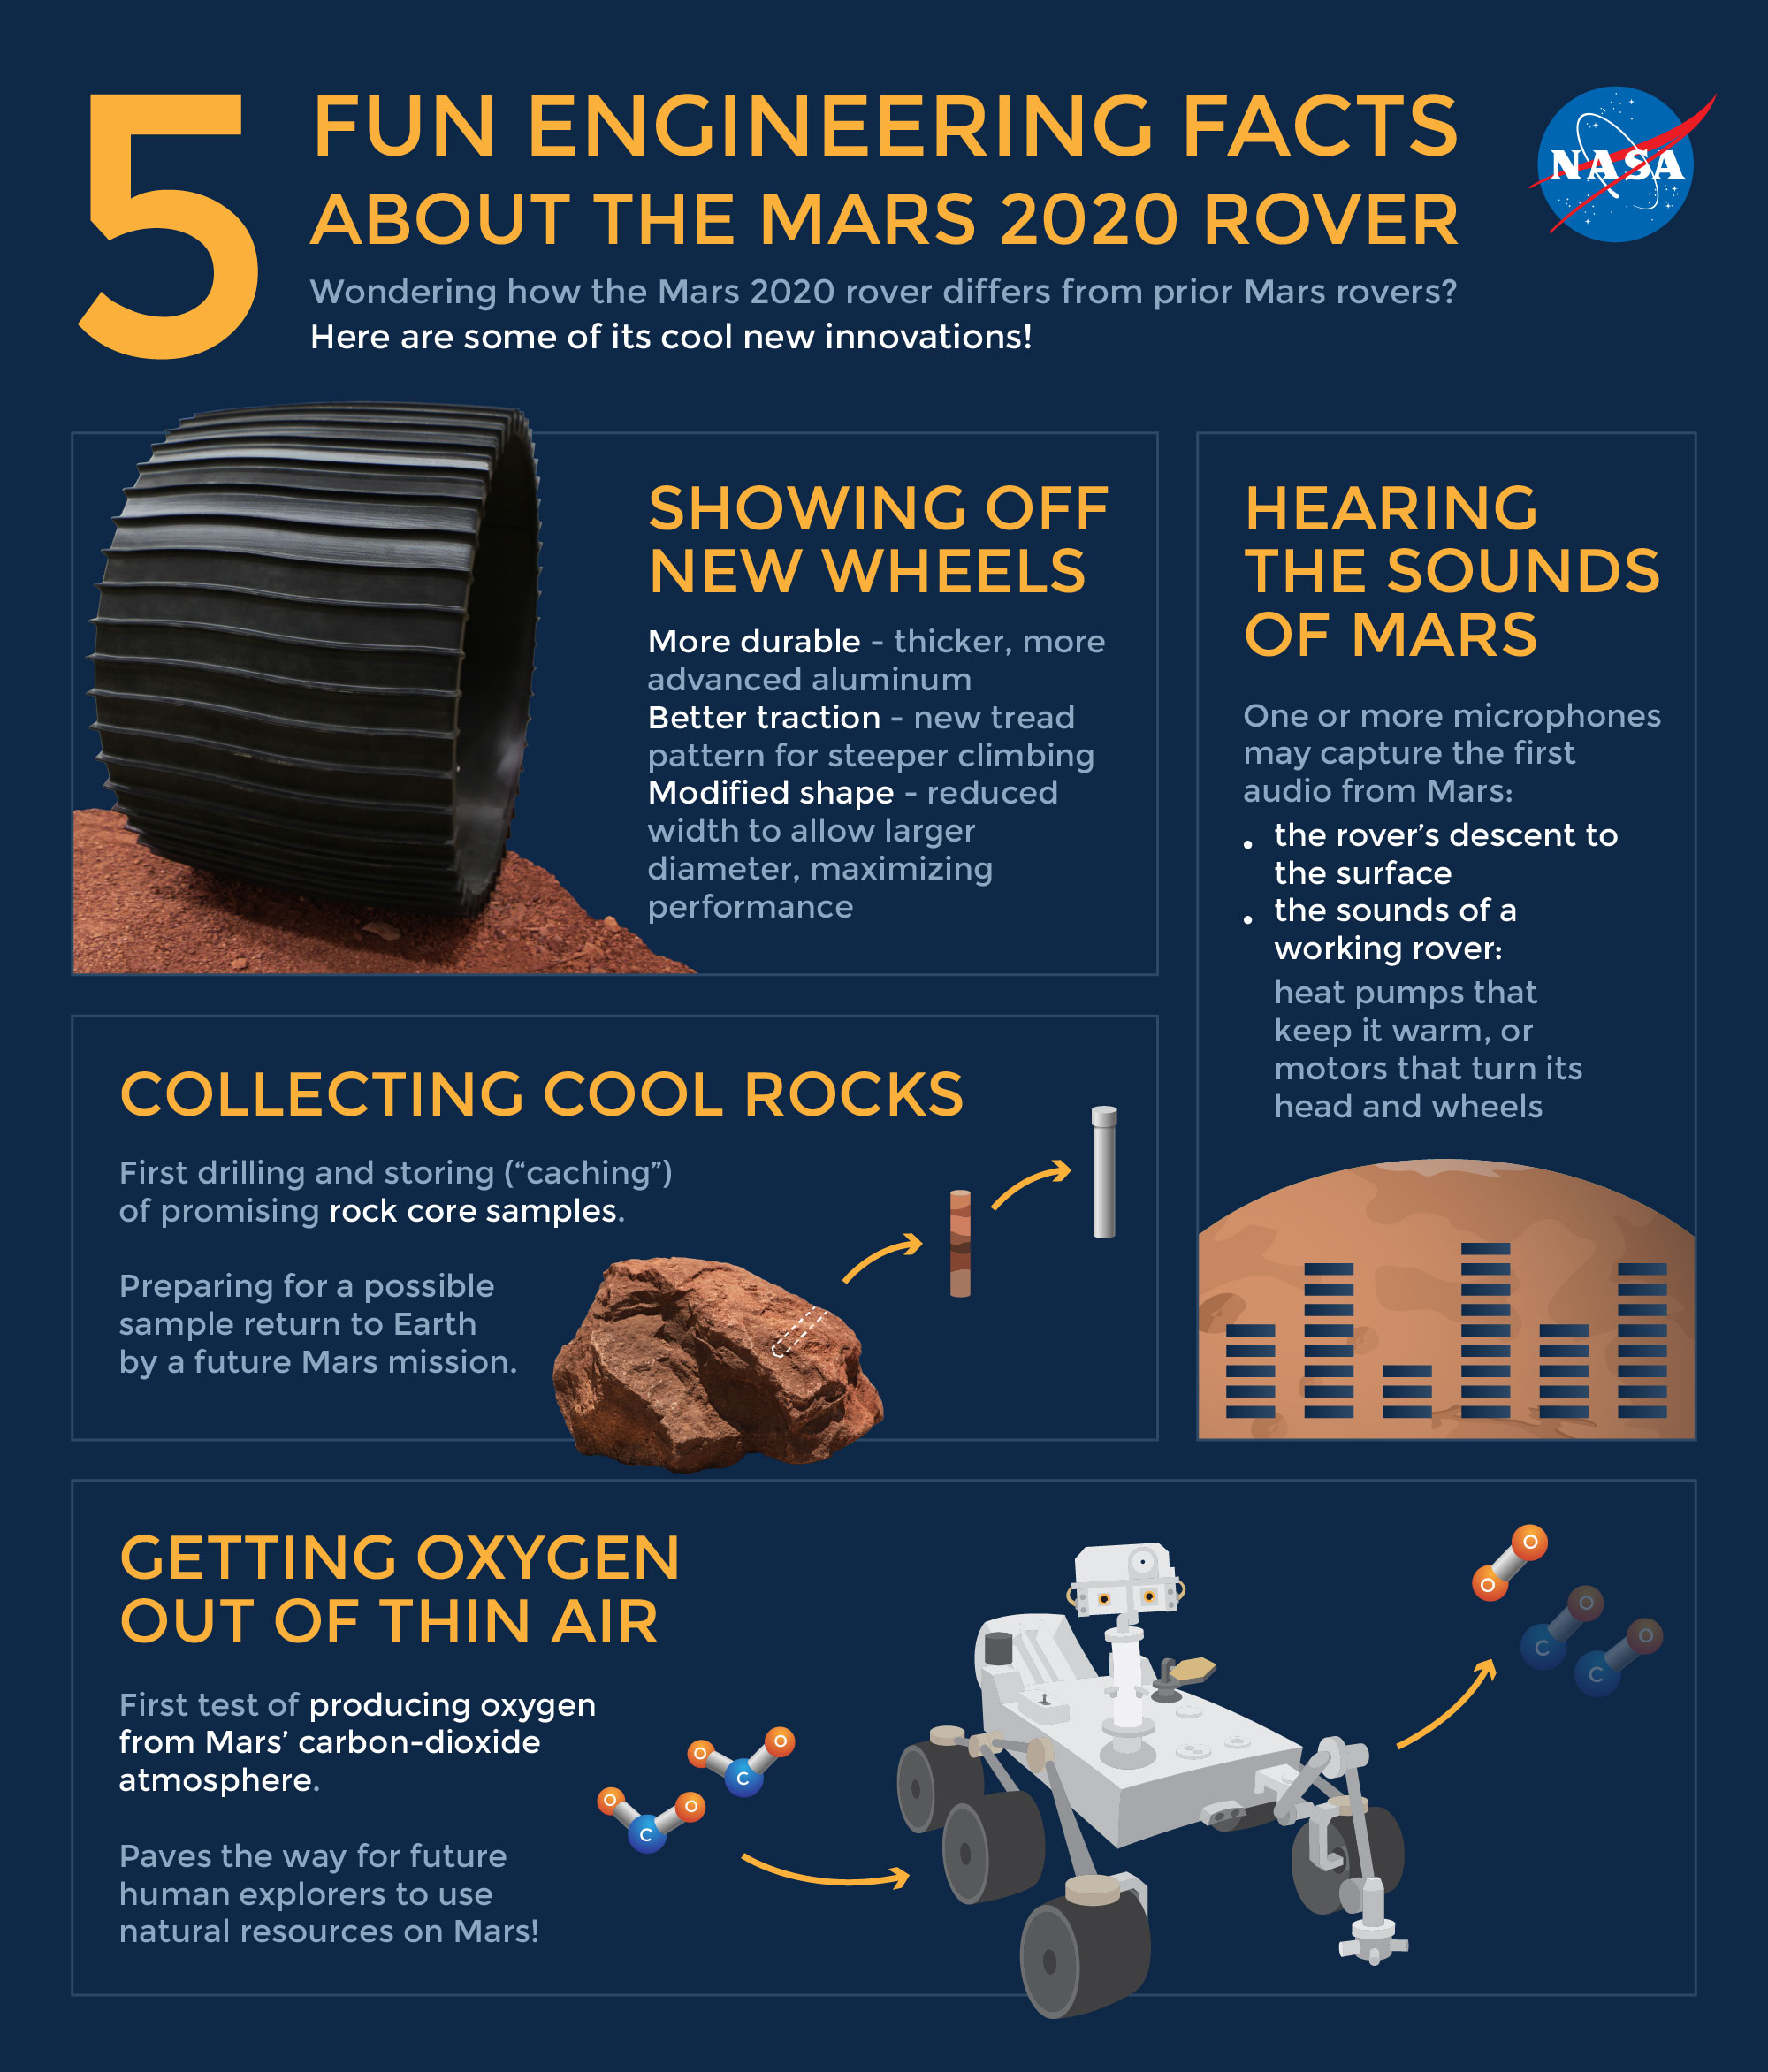 Infographic about the Mars 2020 rover engineering facts (new wheels, microphone, rock core sampling, producing oxygen from Mars' carbon-dioxide, and landing sensors).